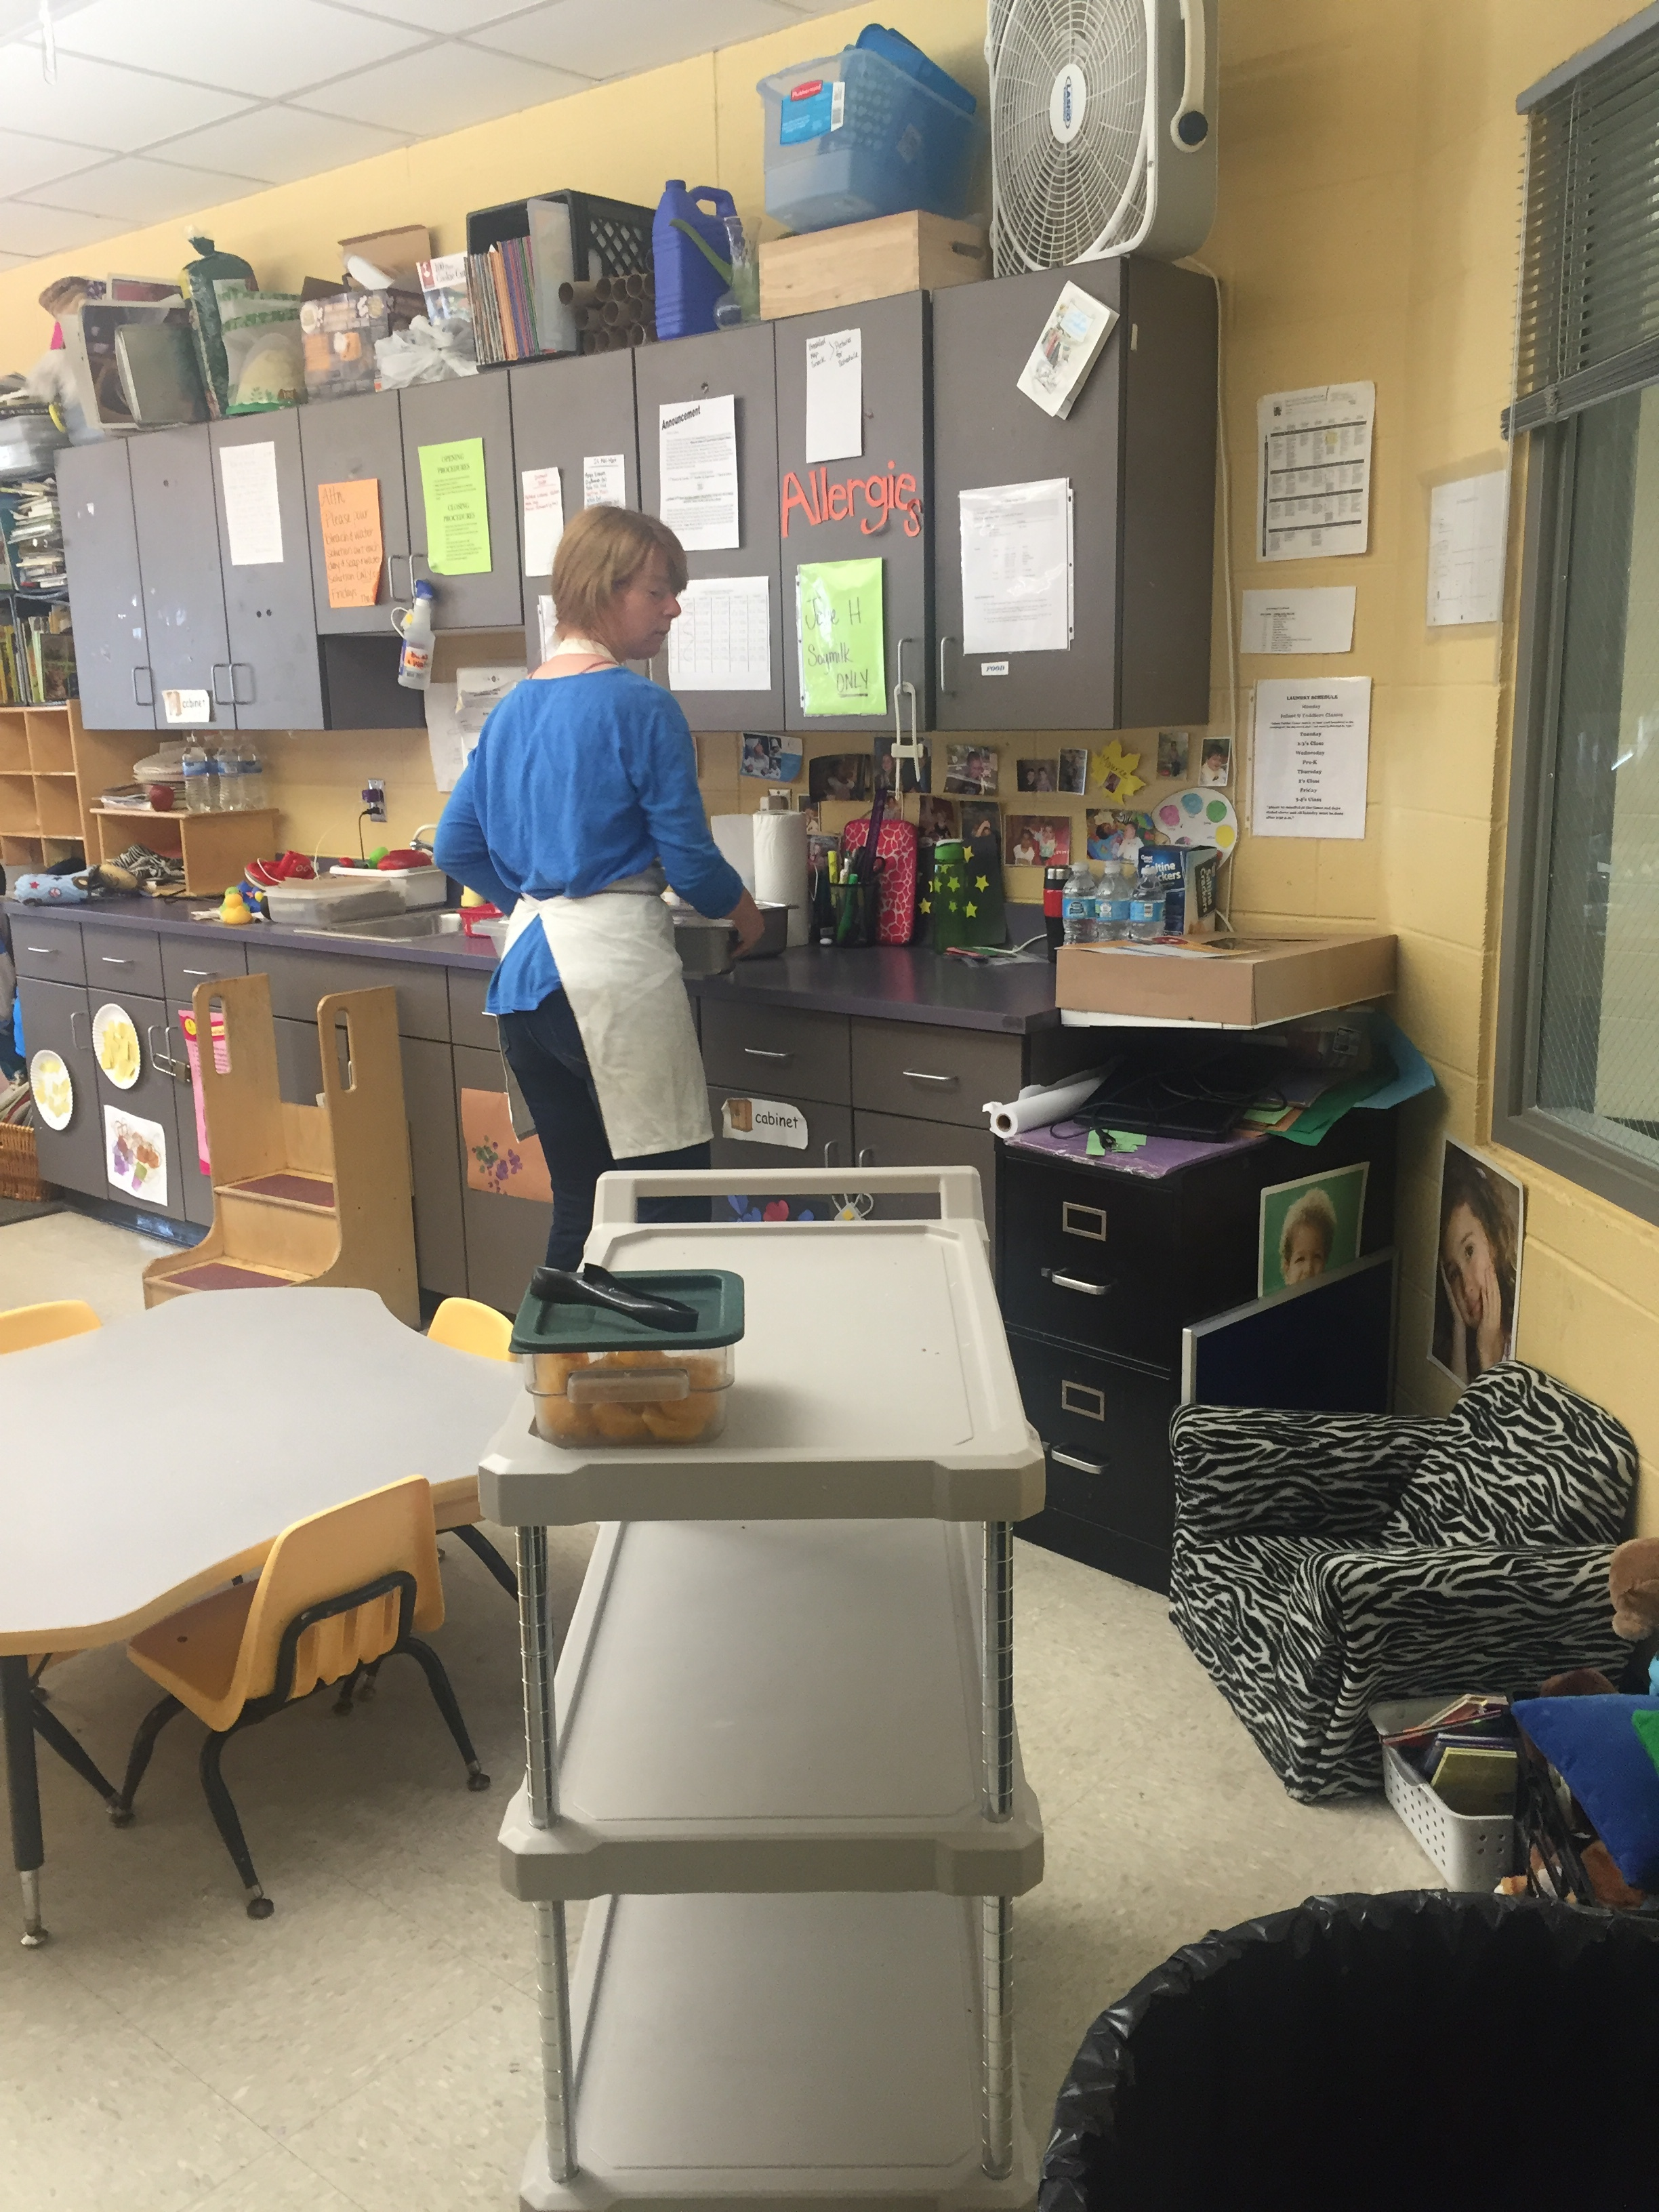 And here she is setting up lunch in one of the preschool classrooms. There, the teachers will portion the food out and serve the kids this yummy lunch.